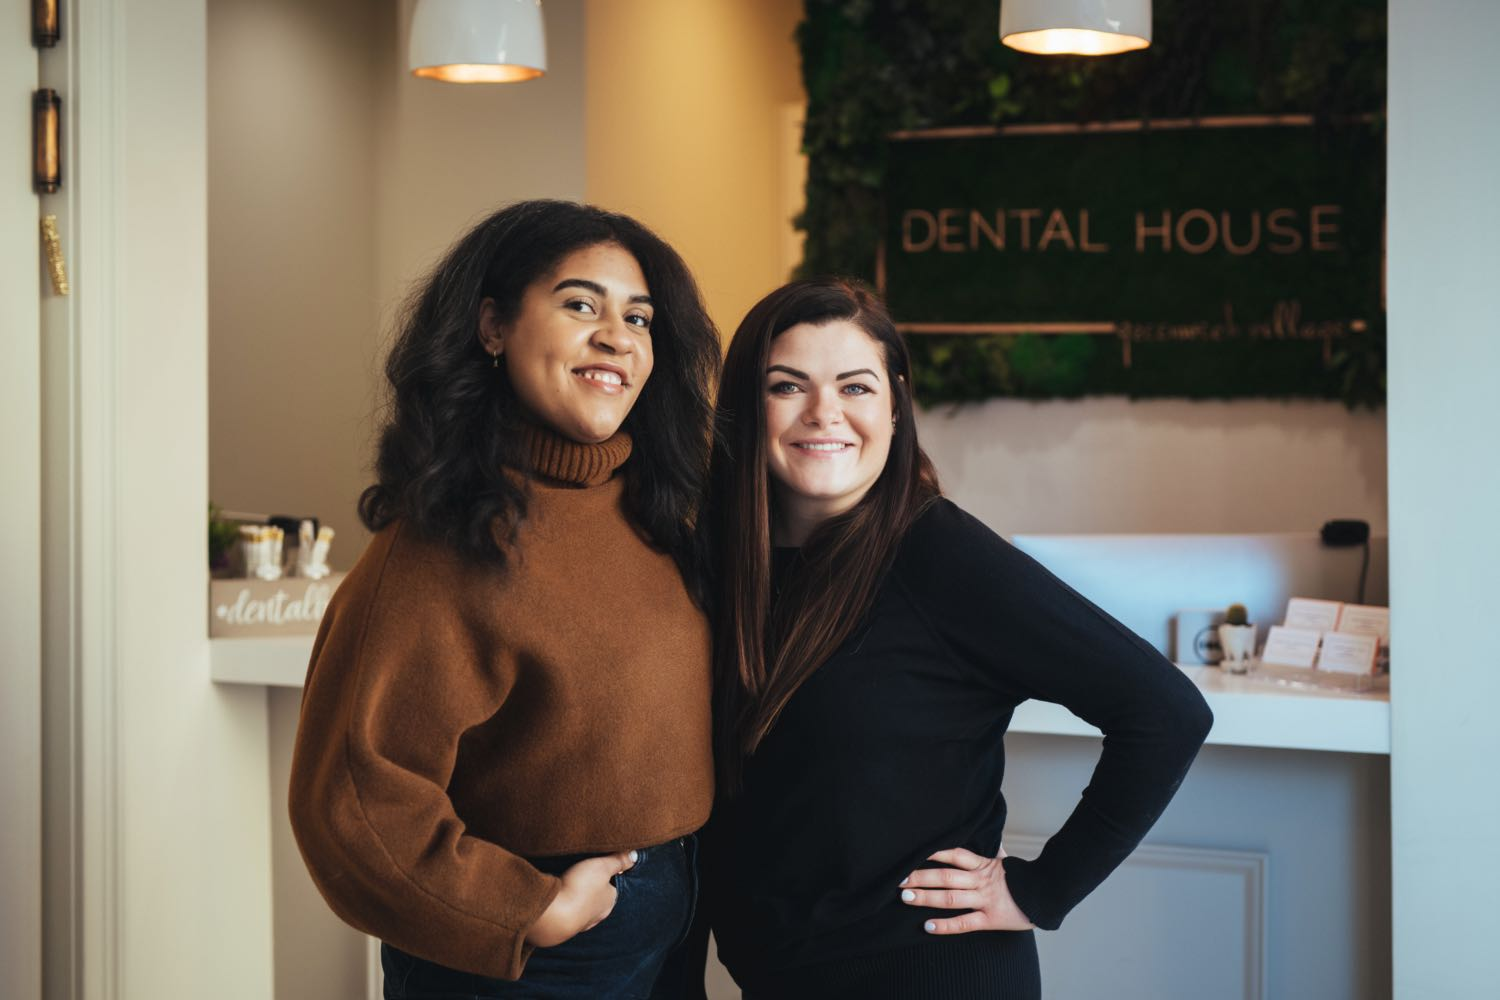 Photo of two Dental House team members posing together